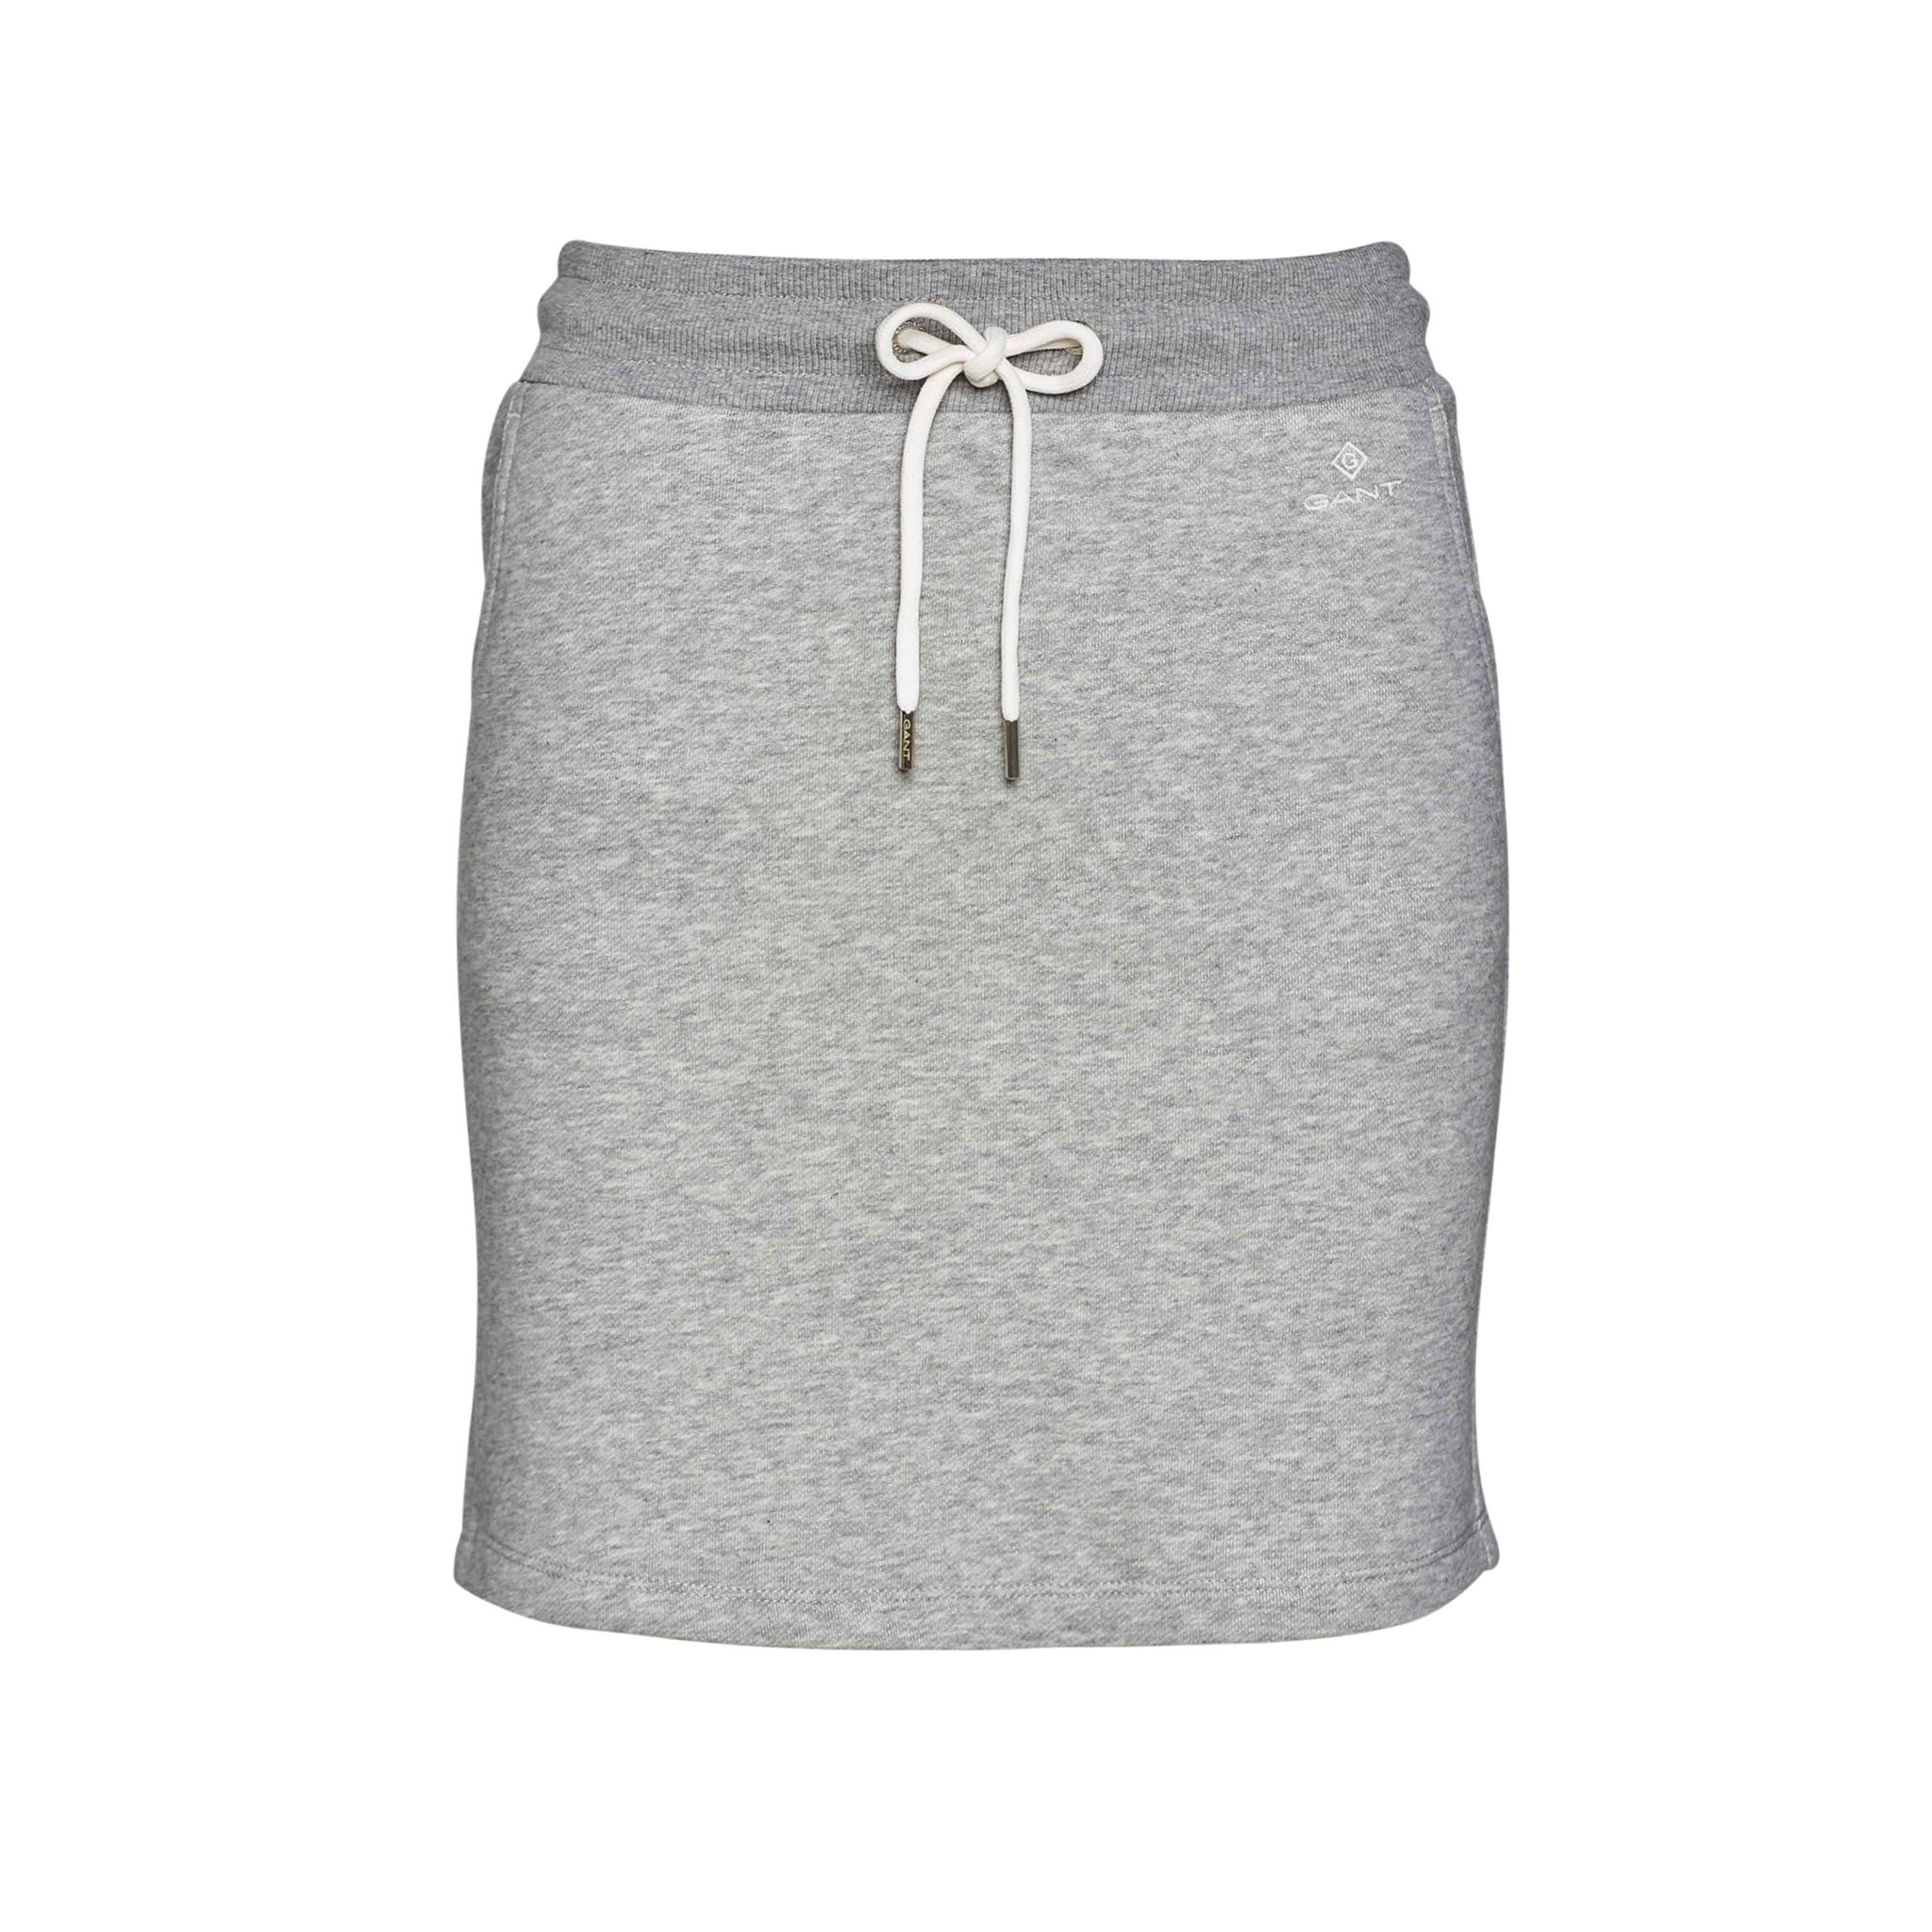 LOCK UP SWEAT SKIRT GANT WOMAN